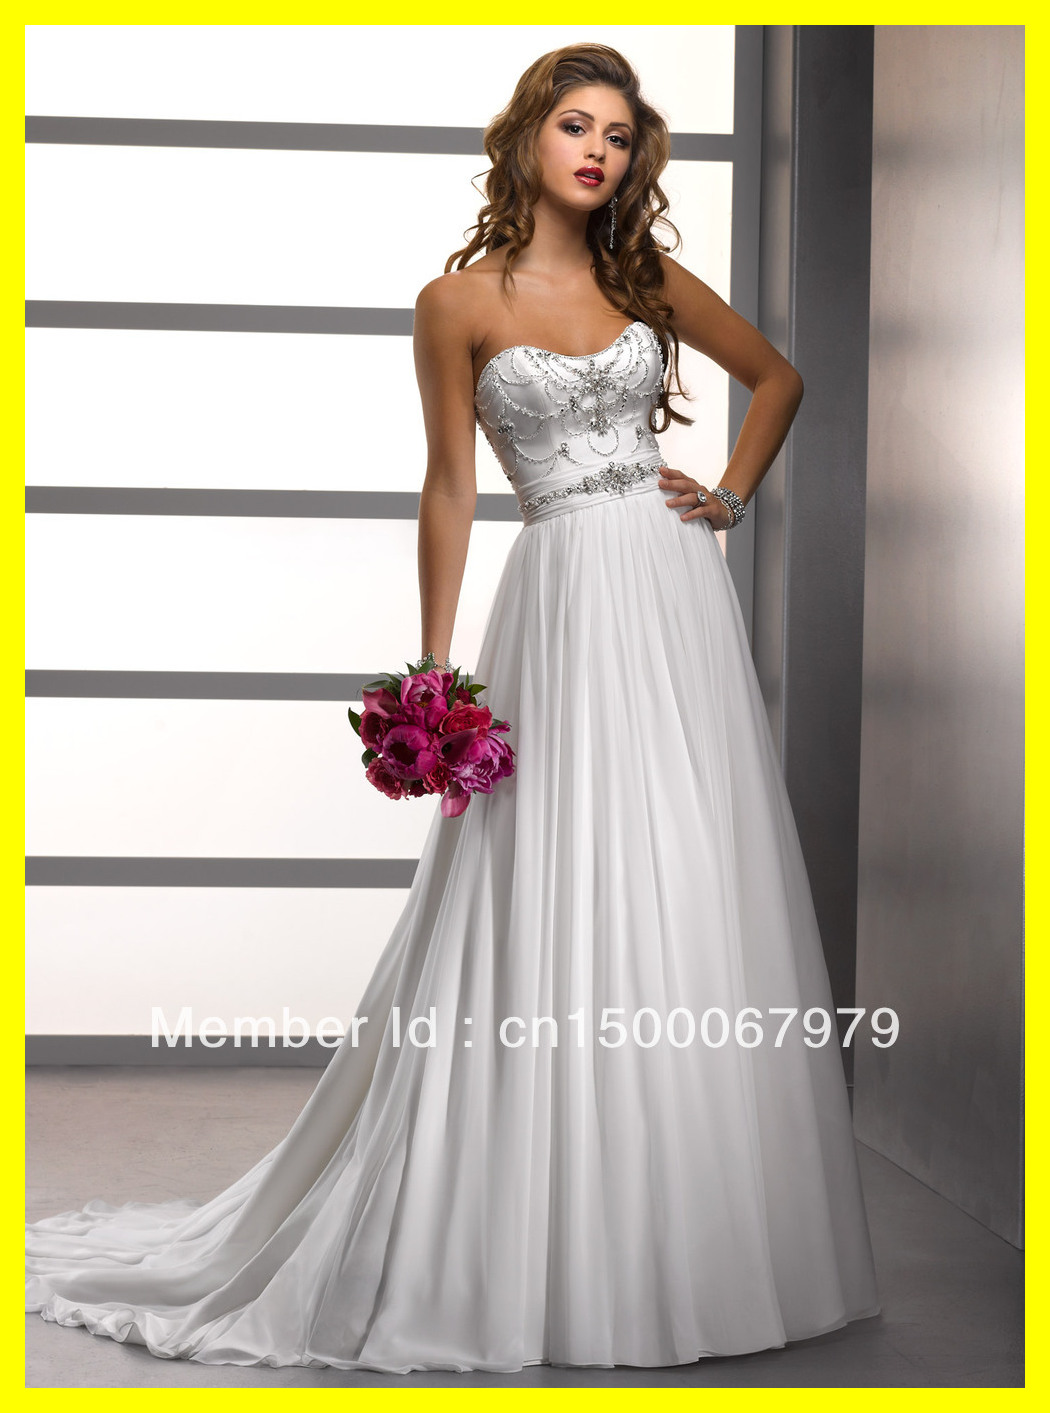 Stunning White And Silver Wedding Dresses Pictures - Styles ...